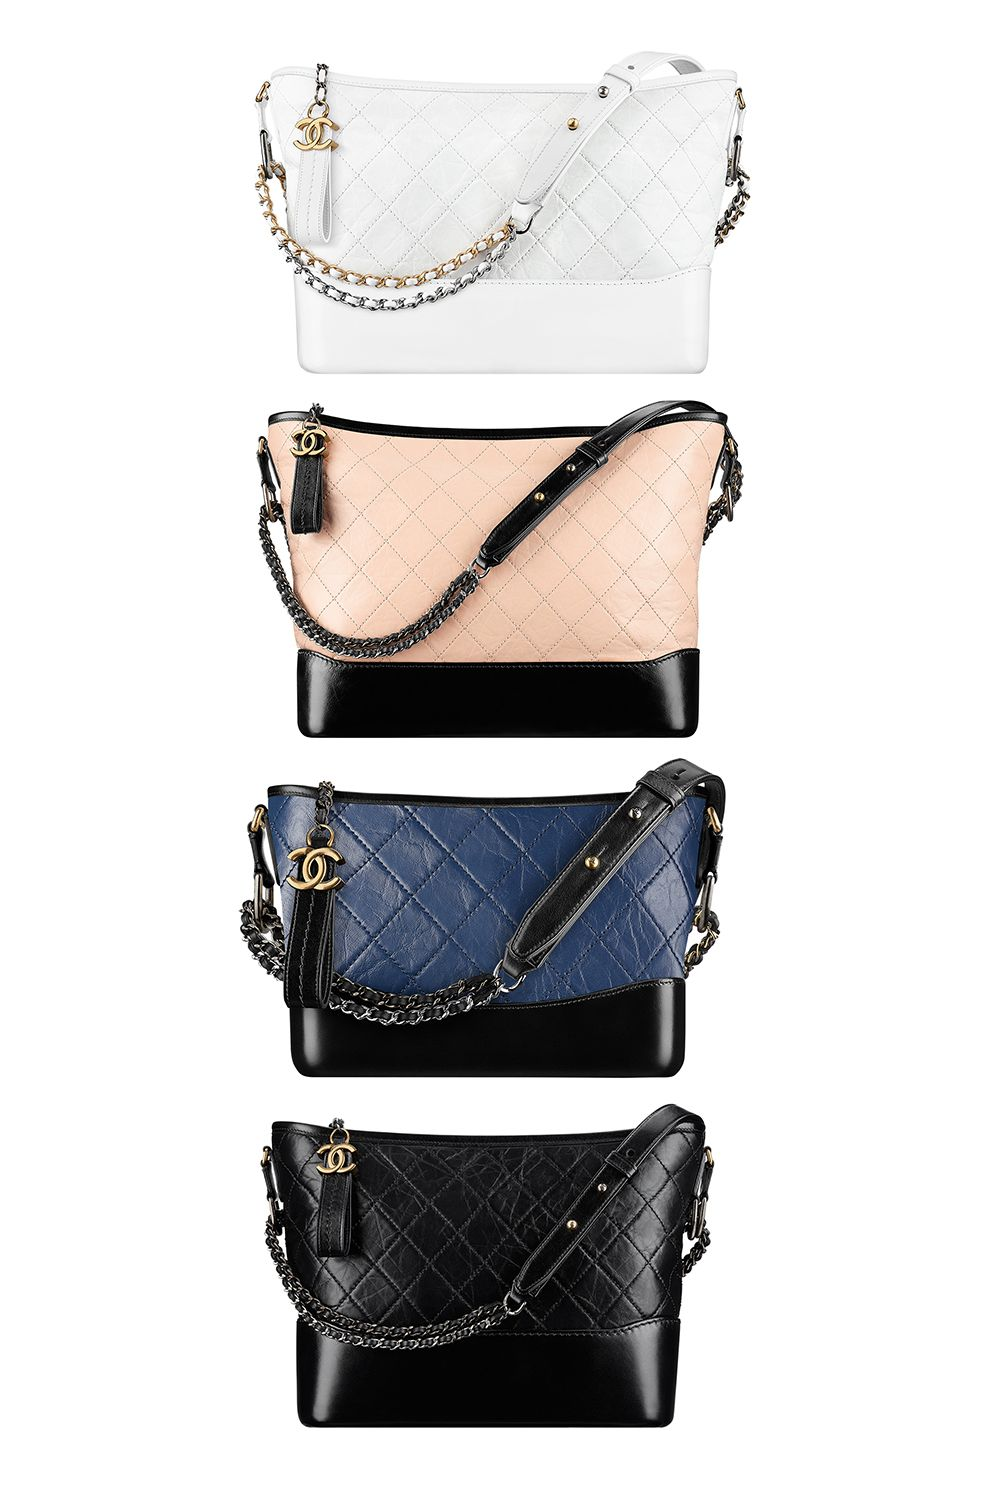 2017 designer handbags - 12 designer handbags making their 2017 debut